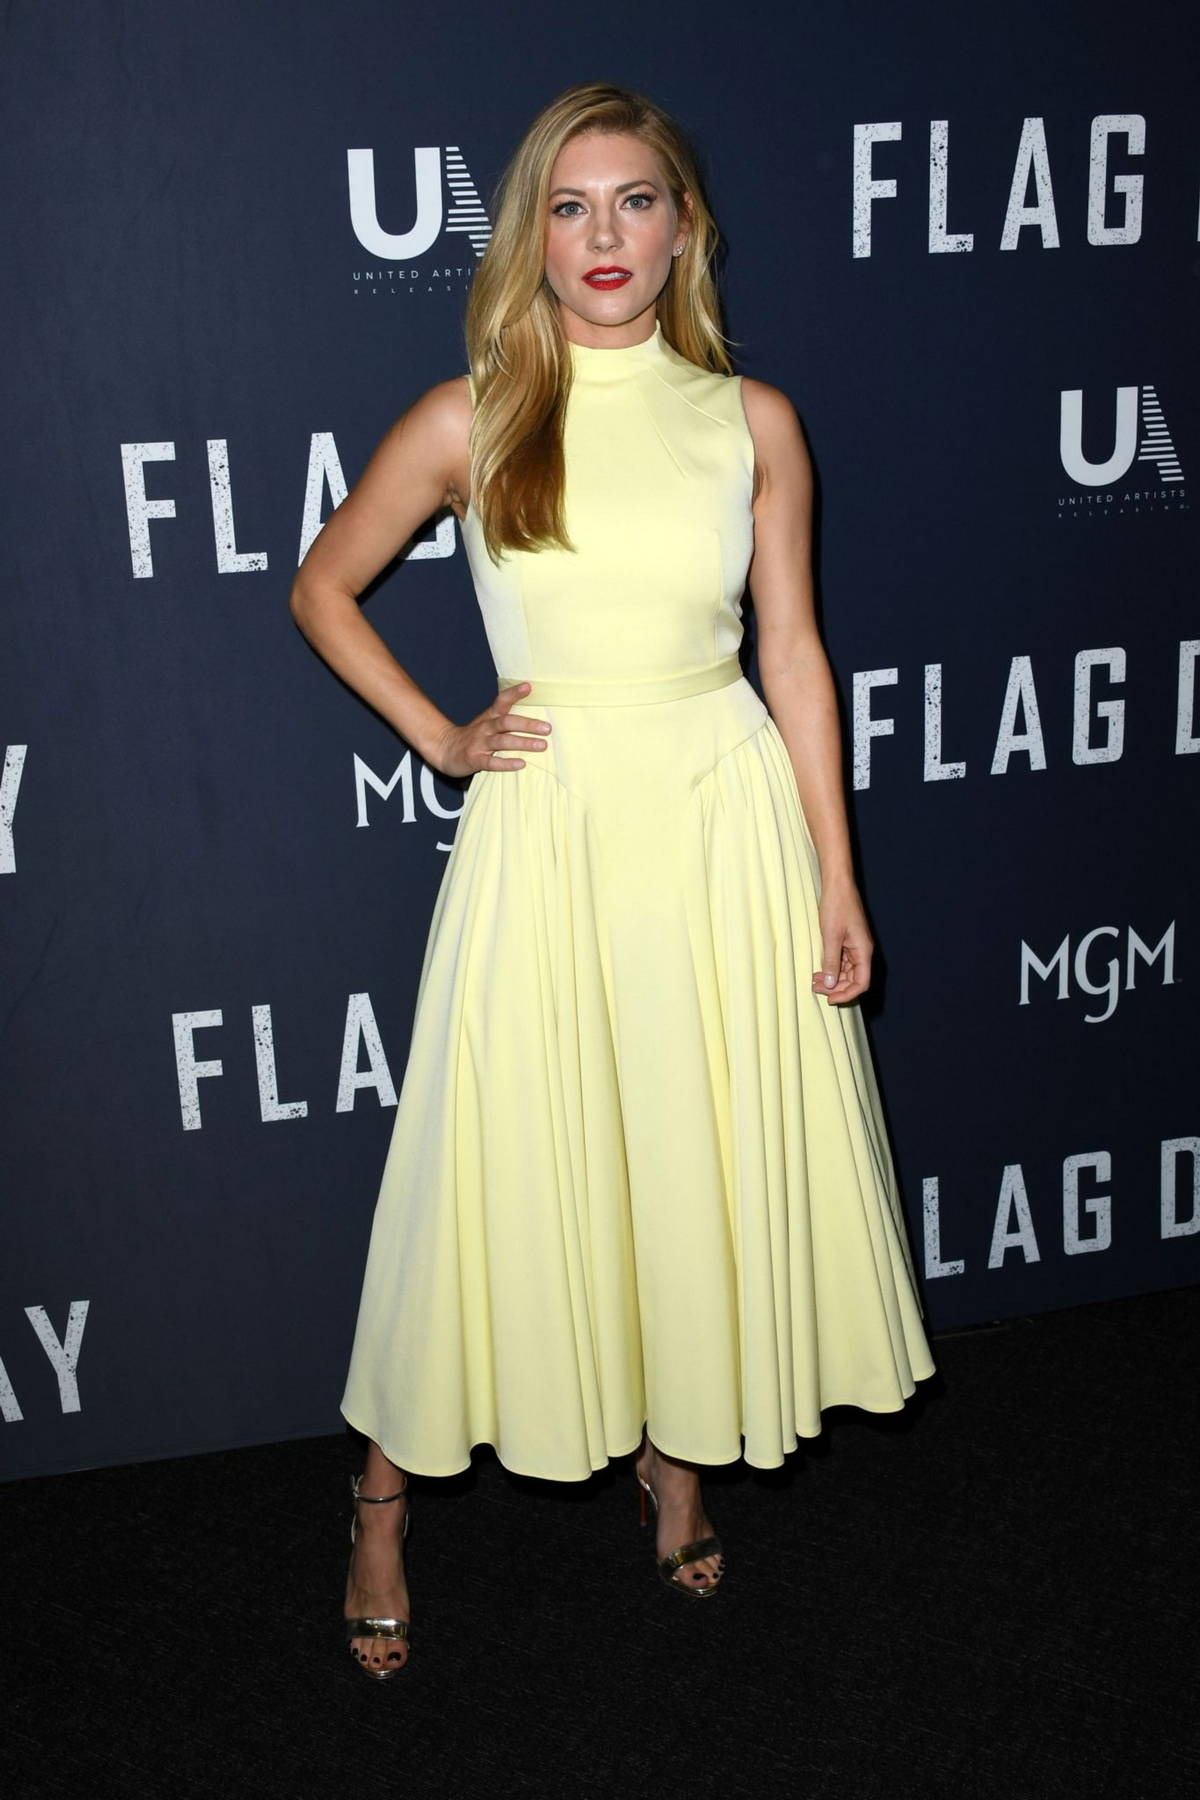 Katheryn Winnick attends a special screening of Sean Penn's 'Flag Day' at The Directors Guild of America in Los Angeles